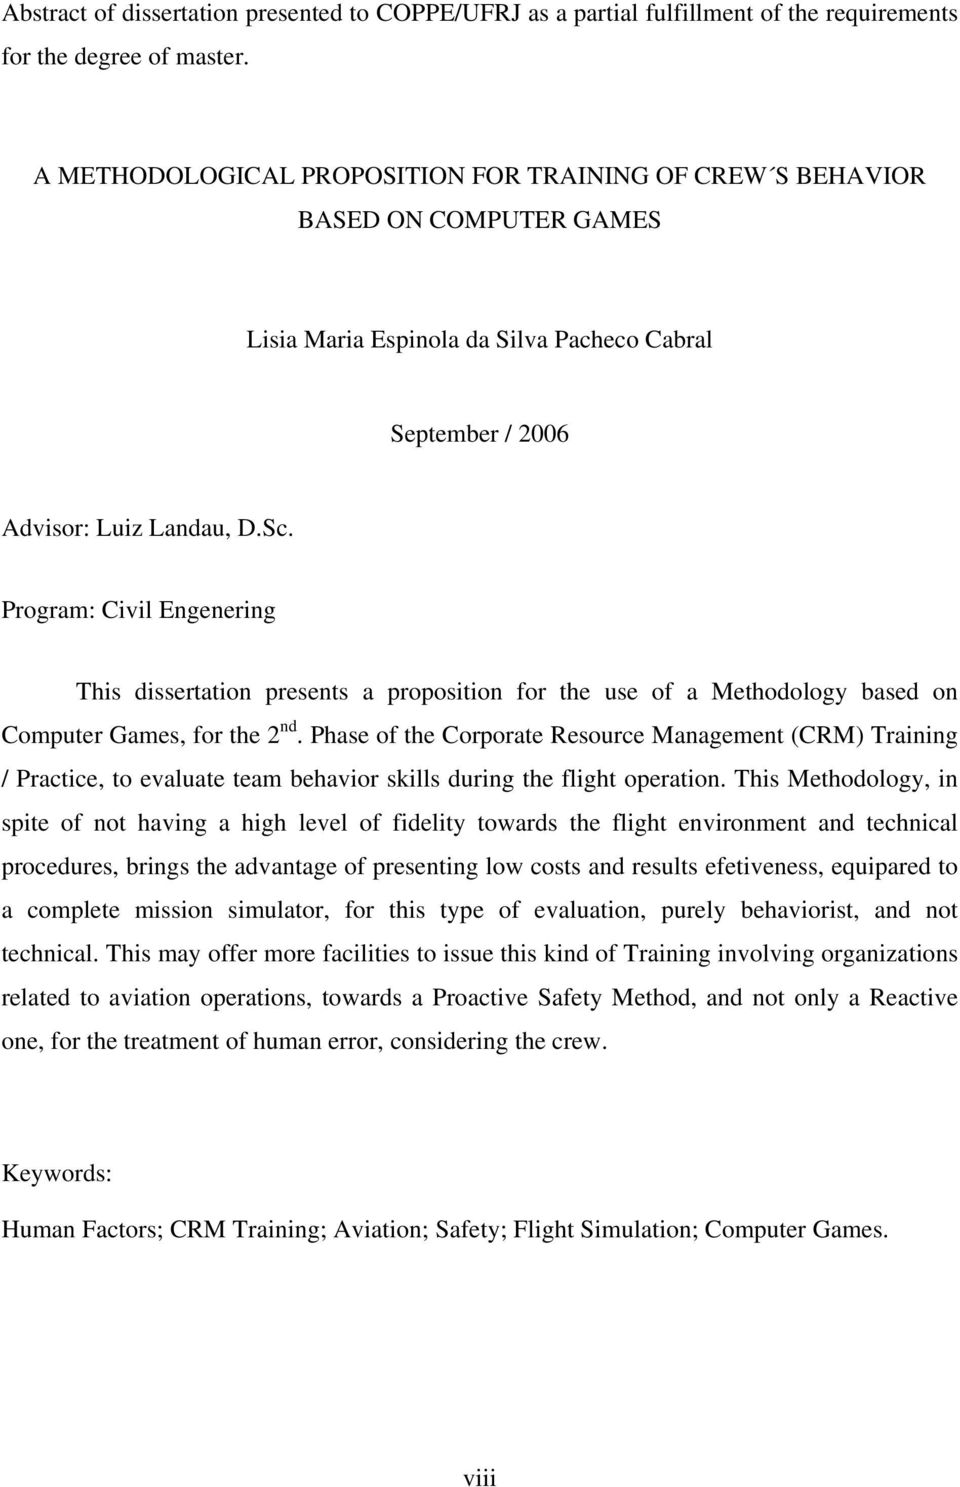 eco Cabral eptember / 2006 Advisor: Luiz Landau, D.c. Program: Civil Engenering This dissertation presents a proposition for the use of a Methodology based on Computer Games, for the 2 nd.